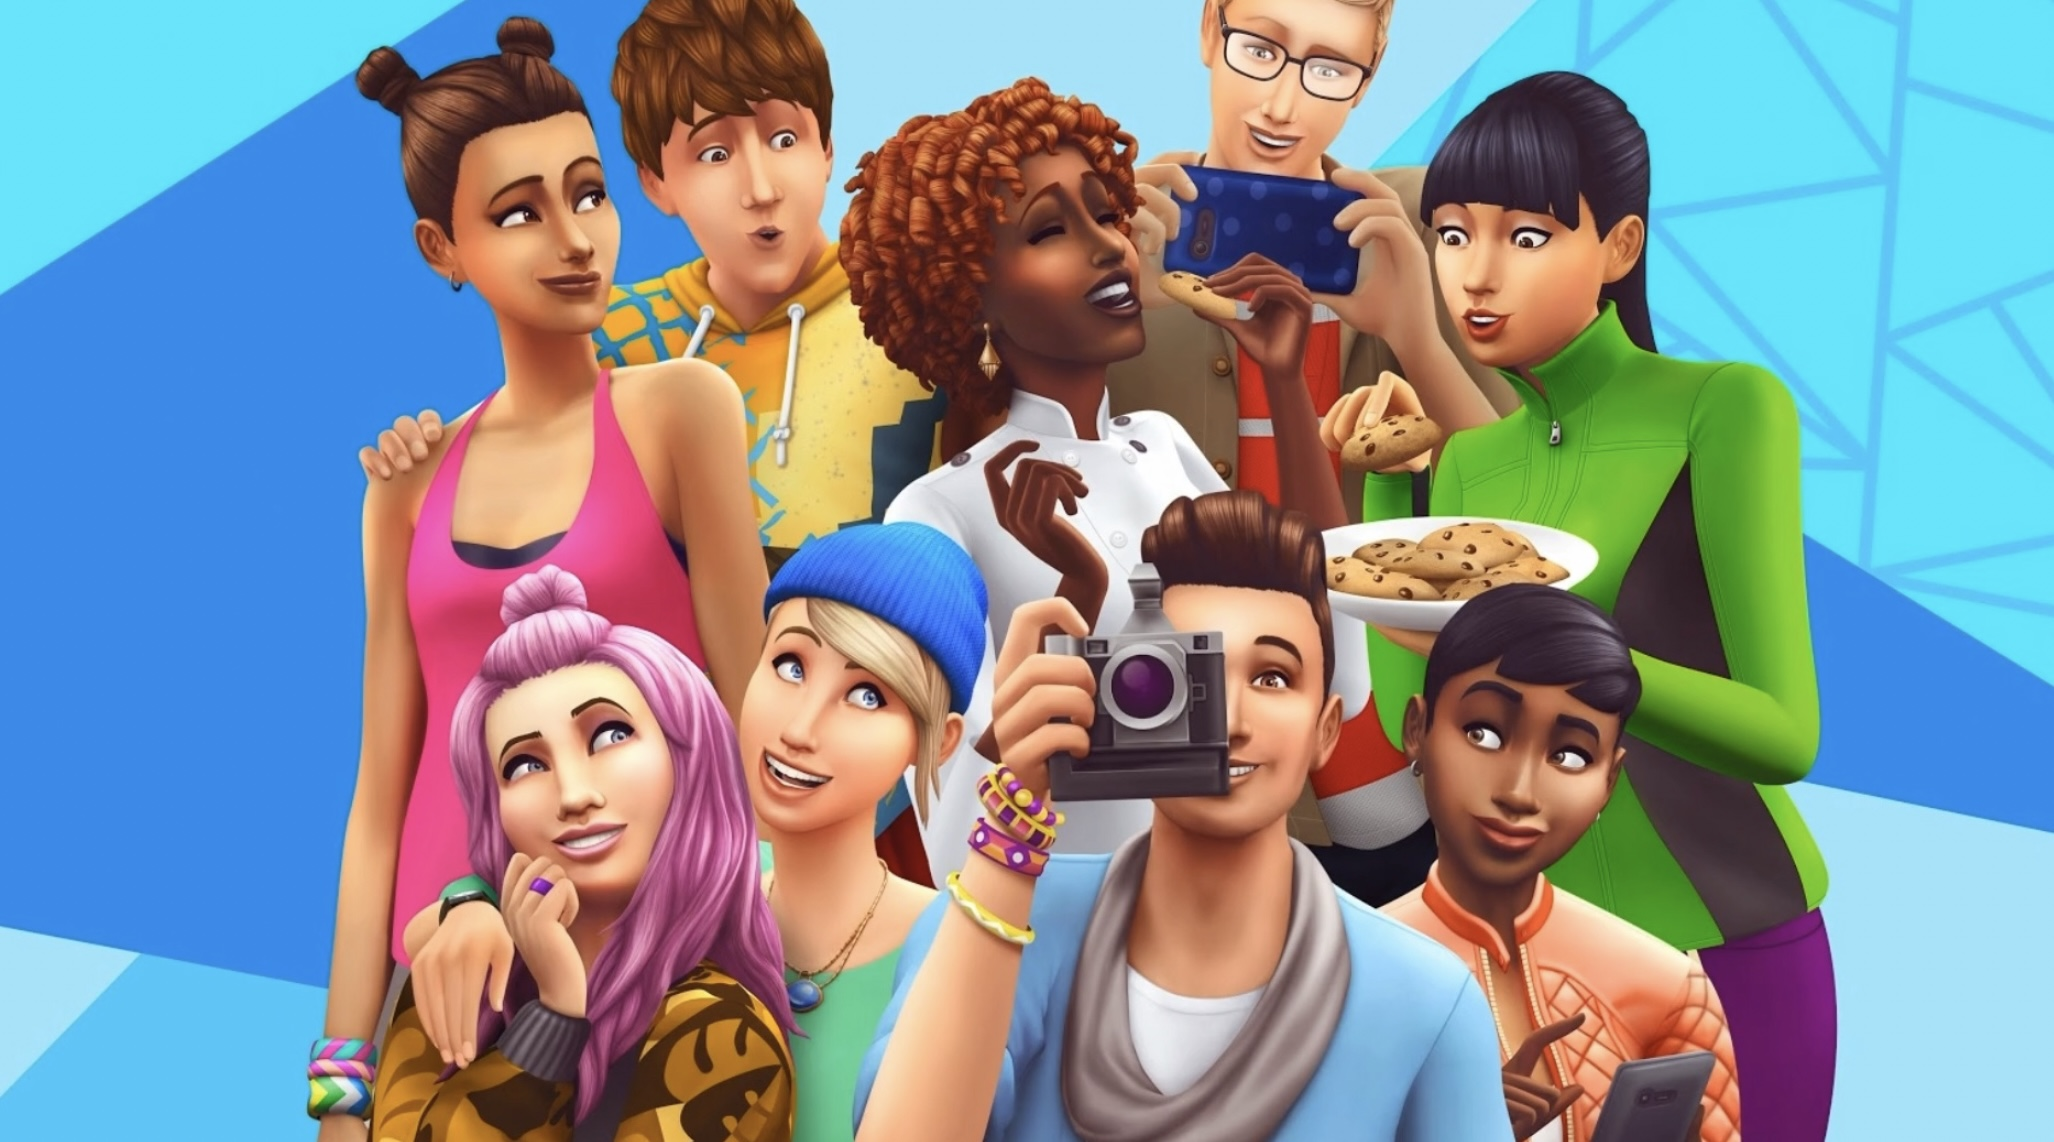 How To Get Unlimited Money In Sims 4